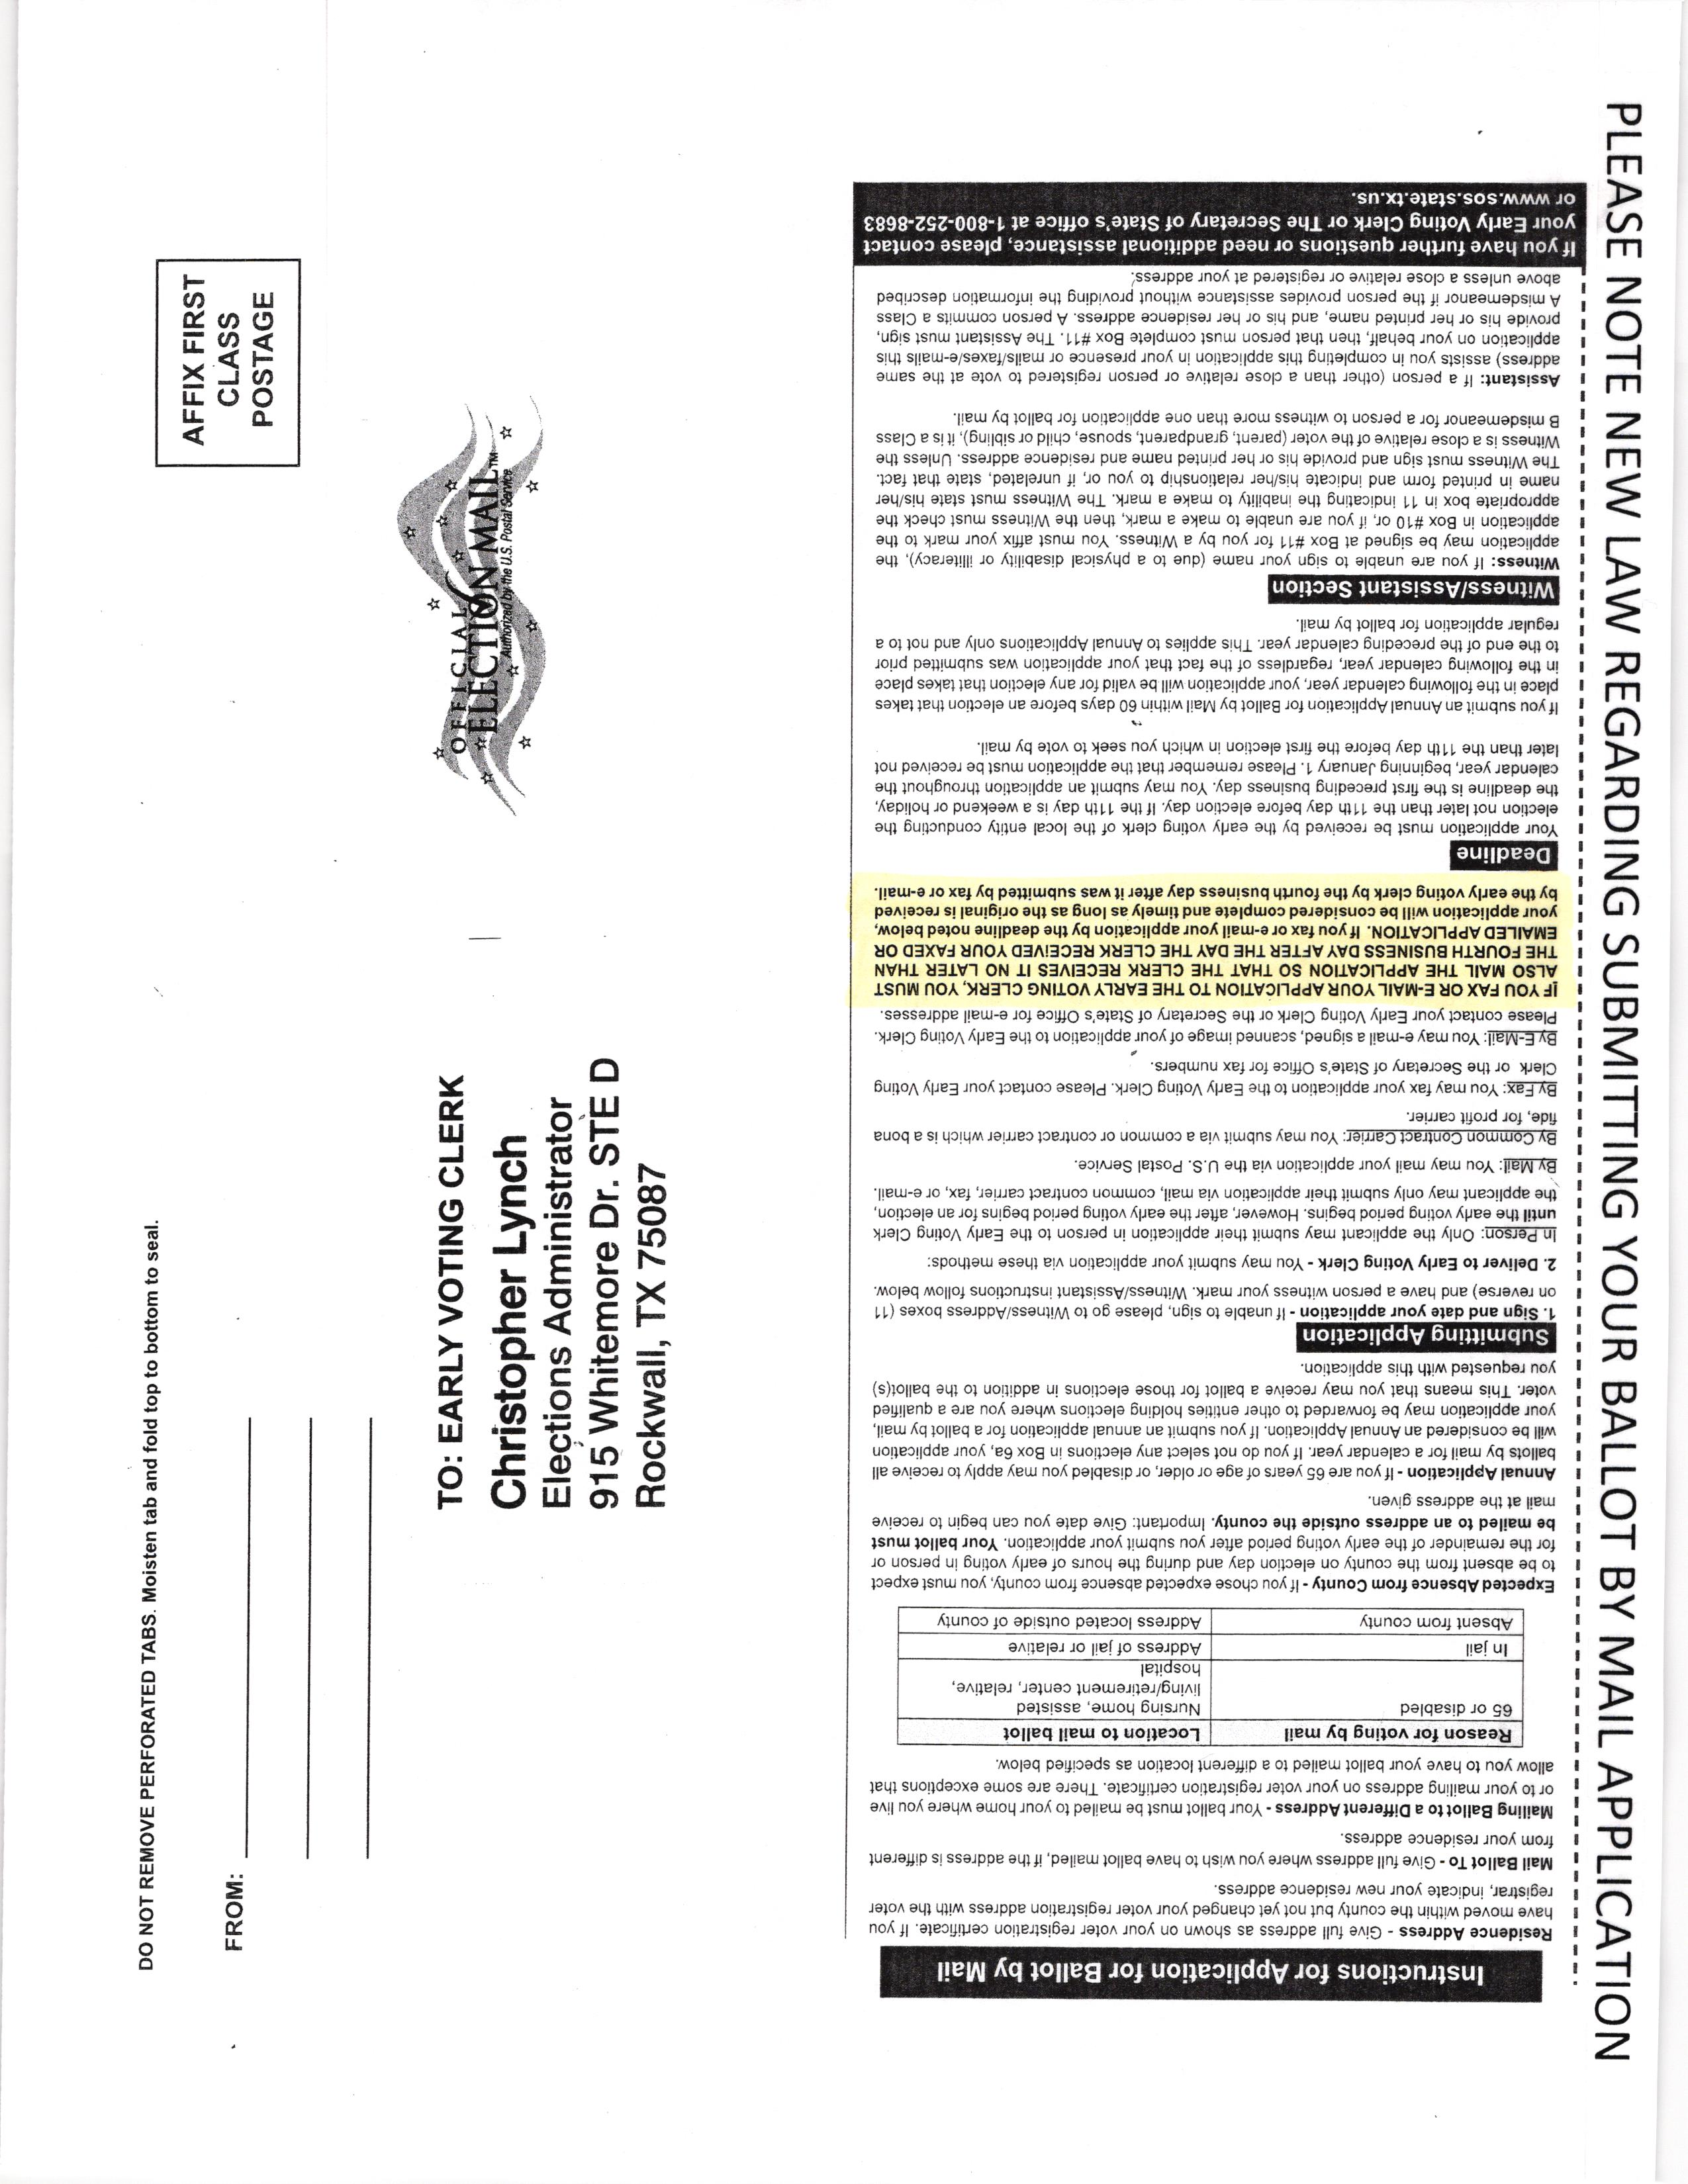 rockwall county tx elections ballot by mail application